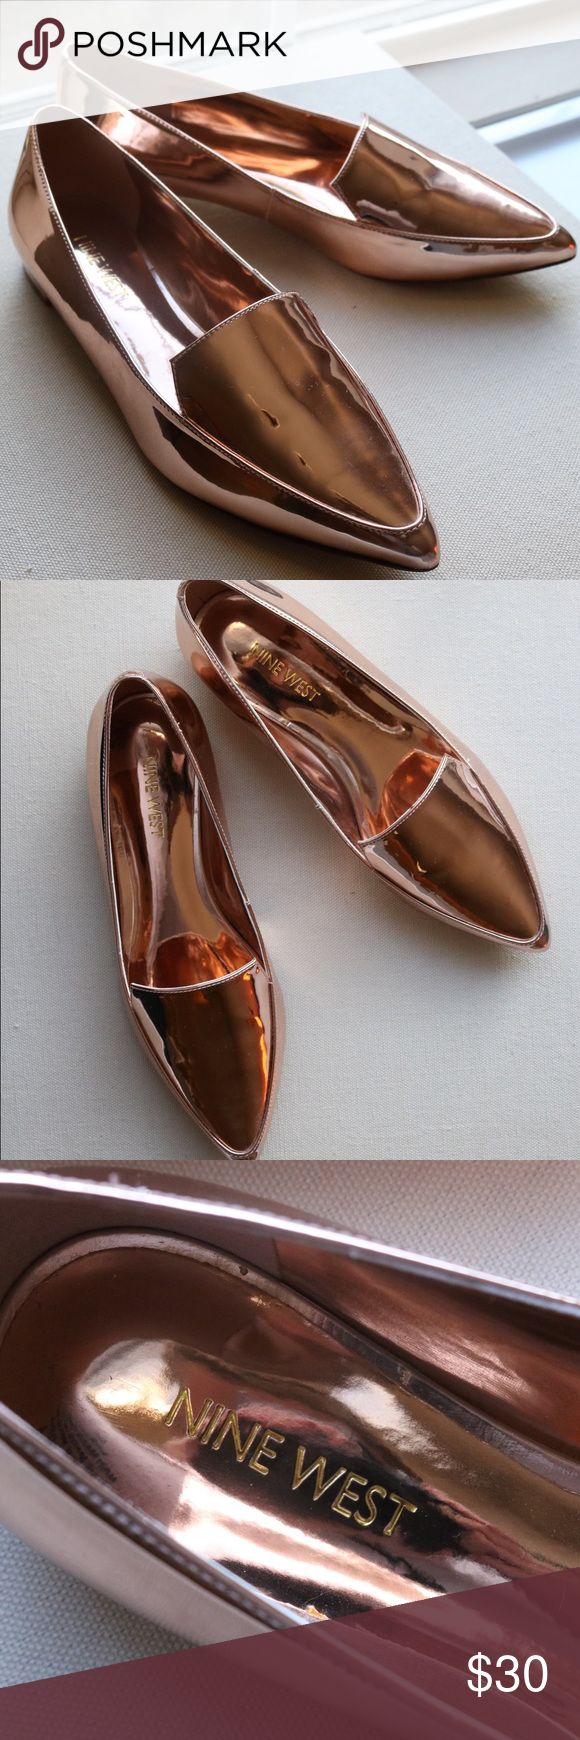 Nine West Abay Smoking Flats - Rose Gold NEVER WORN - Nine West Abay Smoking Flats in Rose Gold Nine West Shoes Flats & Loafers